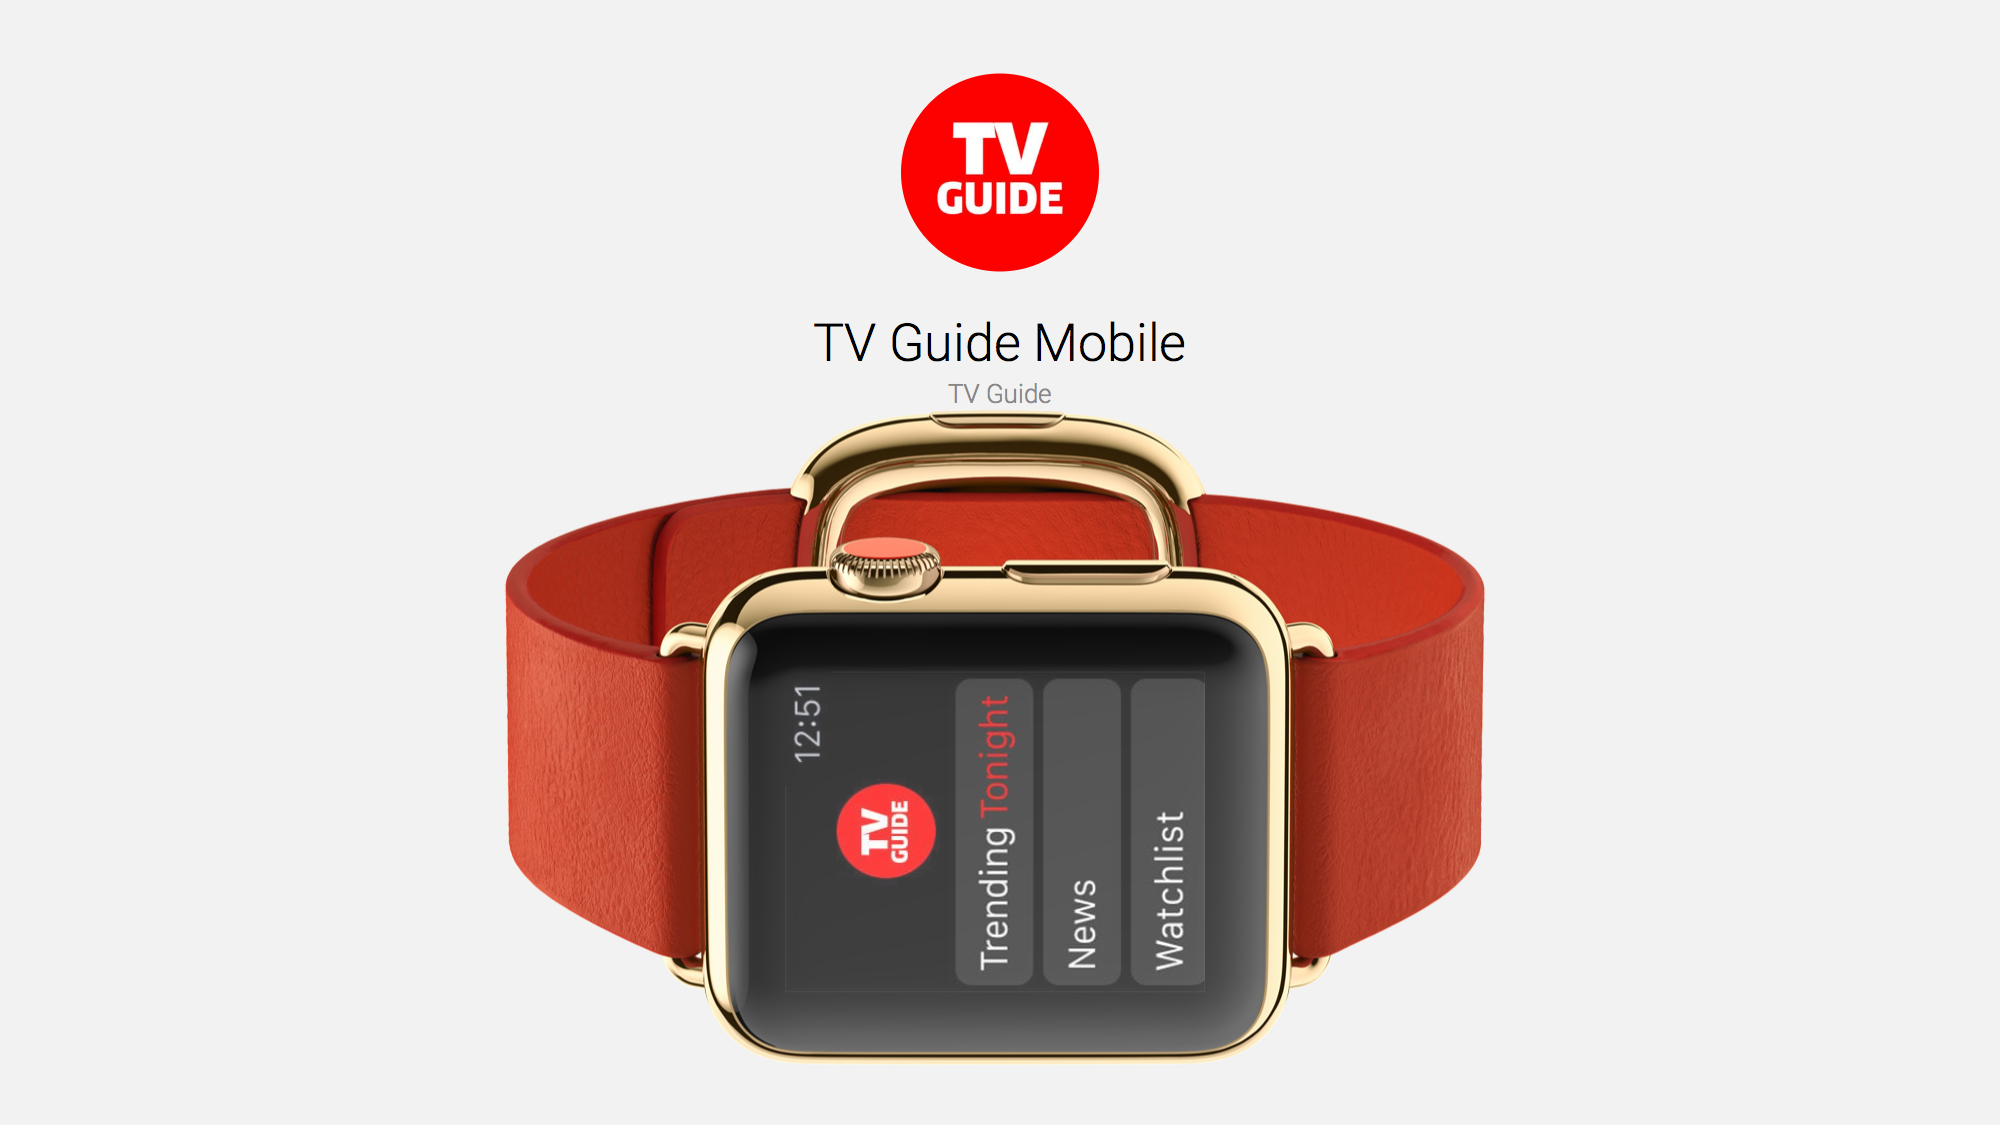 TV Guide Mobile is the TV Companion for Your Wrist